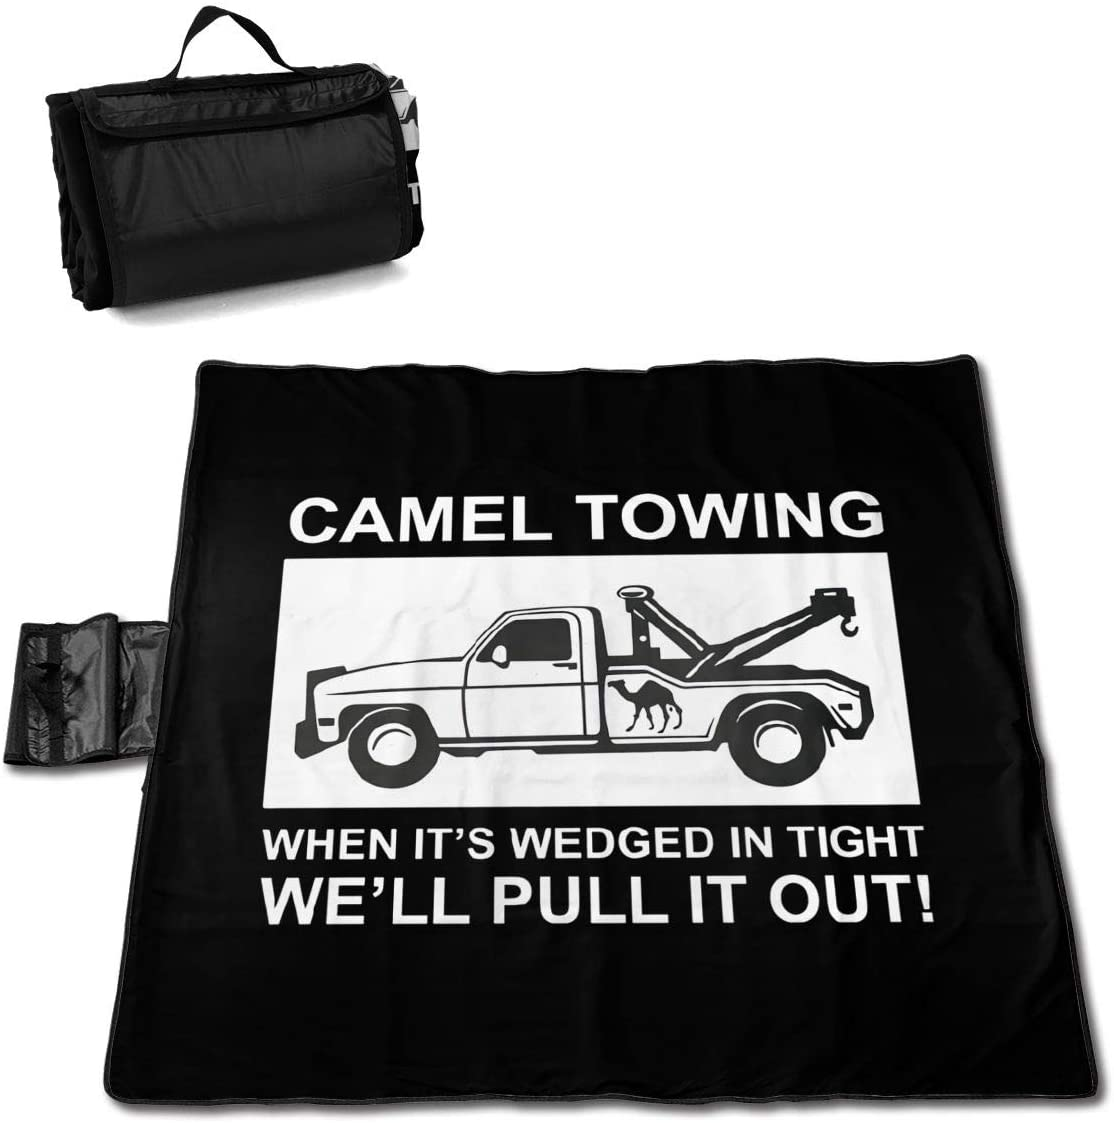 Htu Camel Towing Pull It Out Portable Printed Picnic Blanket Waterproof 59x57(in)